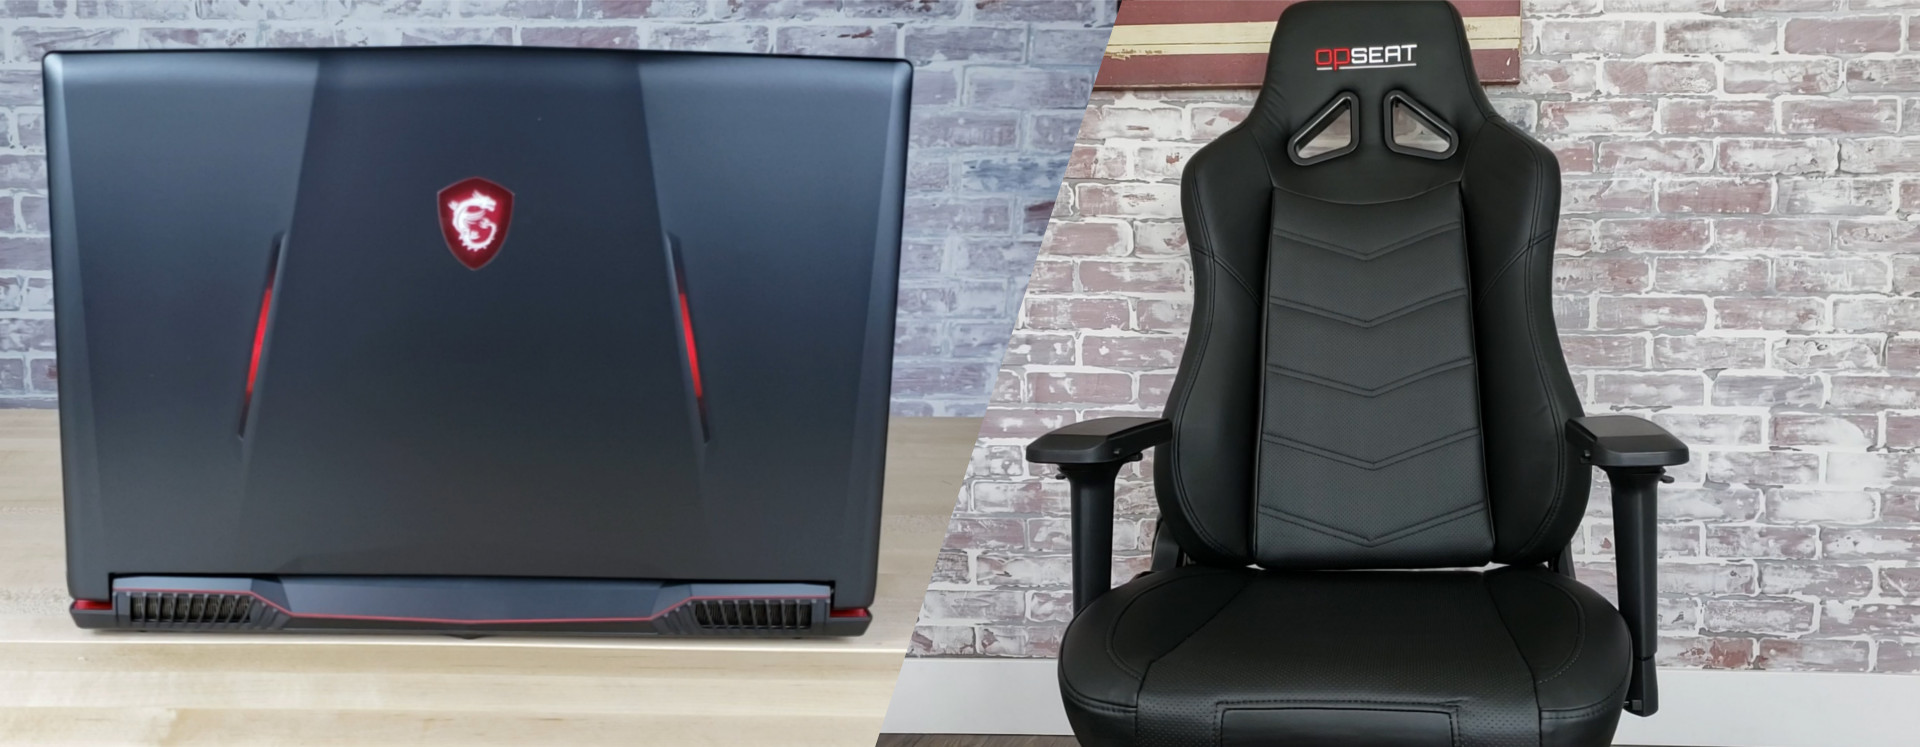 Win an MSI GV63 Gaming Laptop and OPSeat Grandmaster Gaming Chair!! Giveaway Image